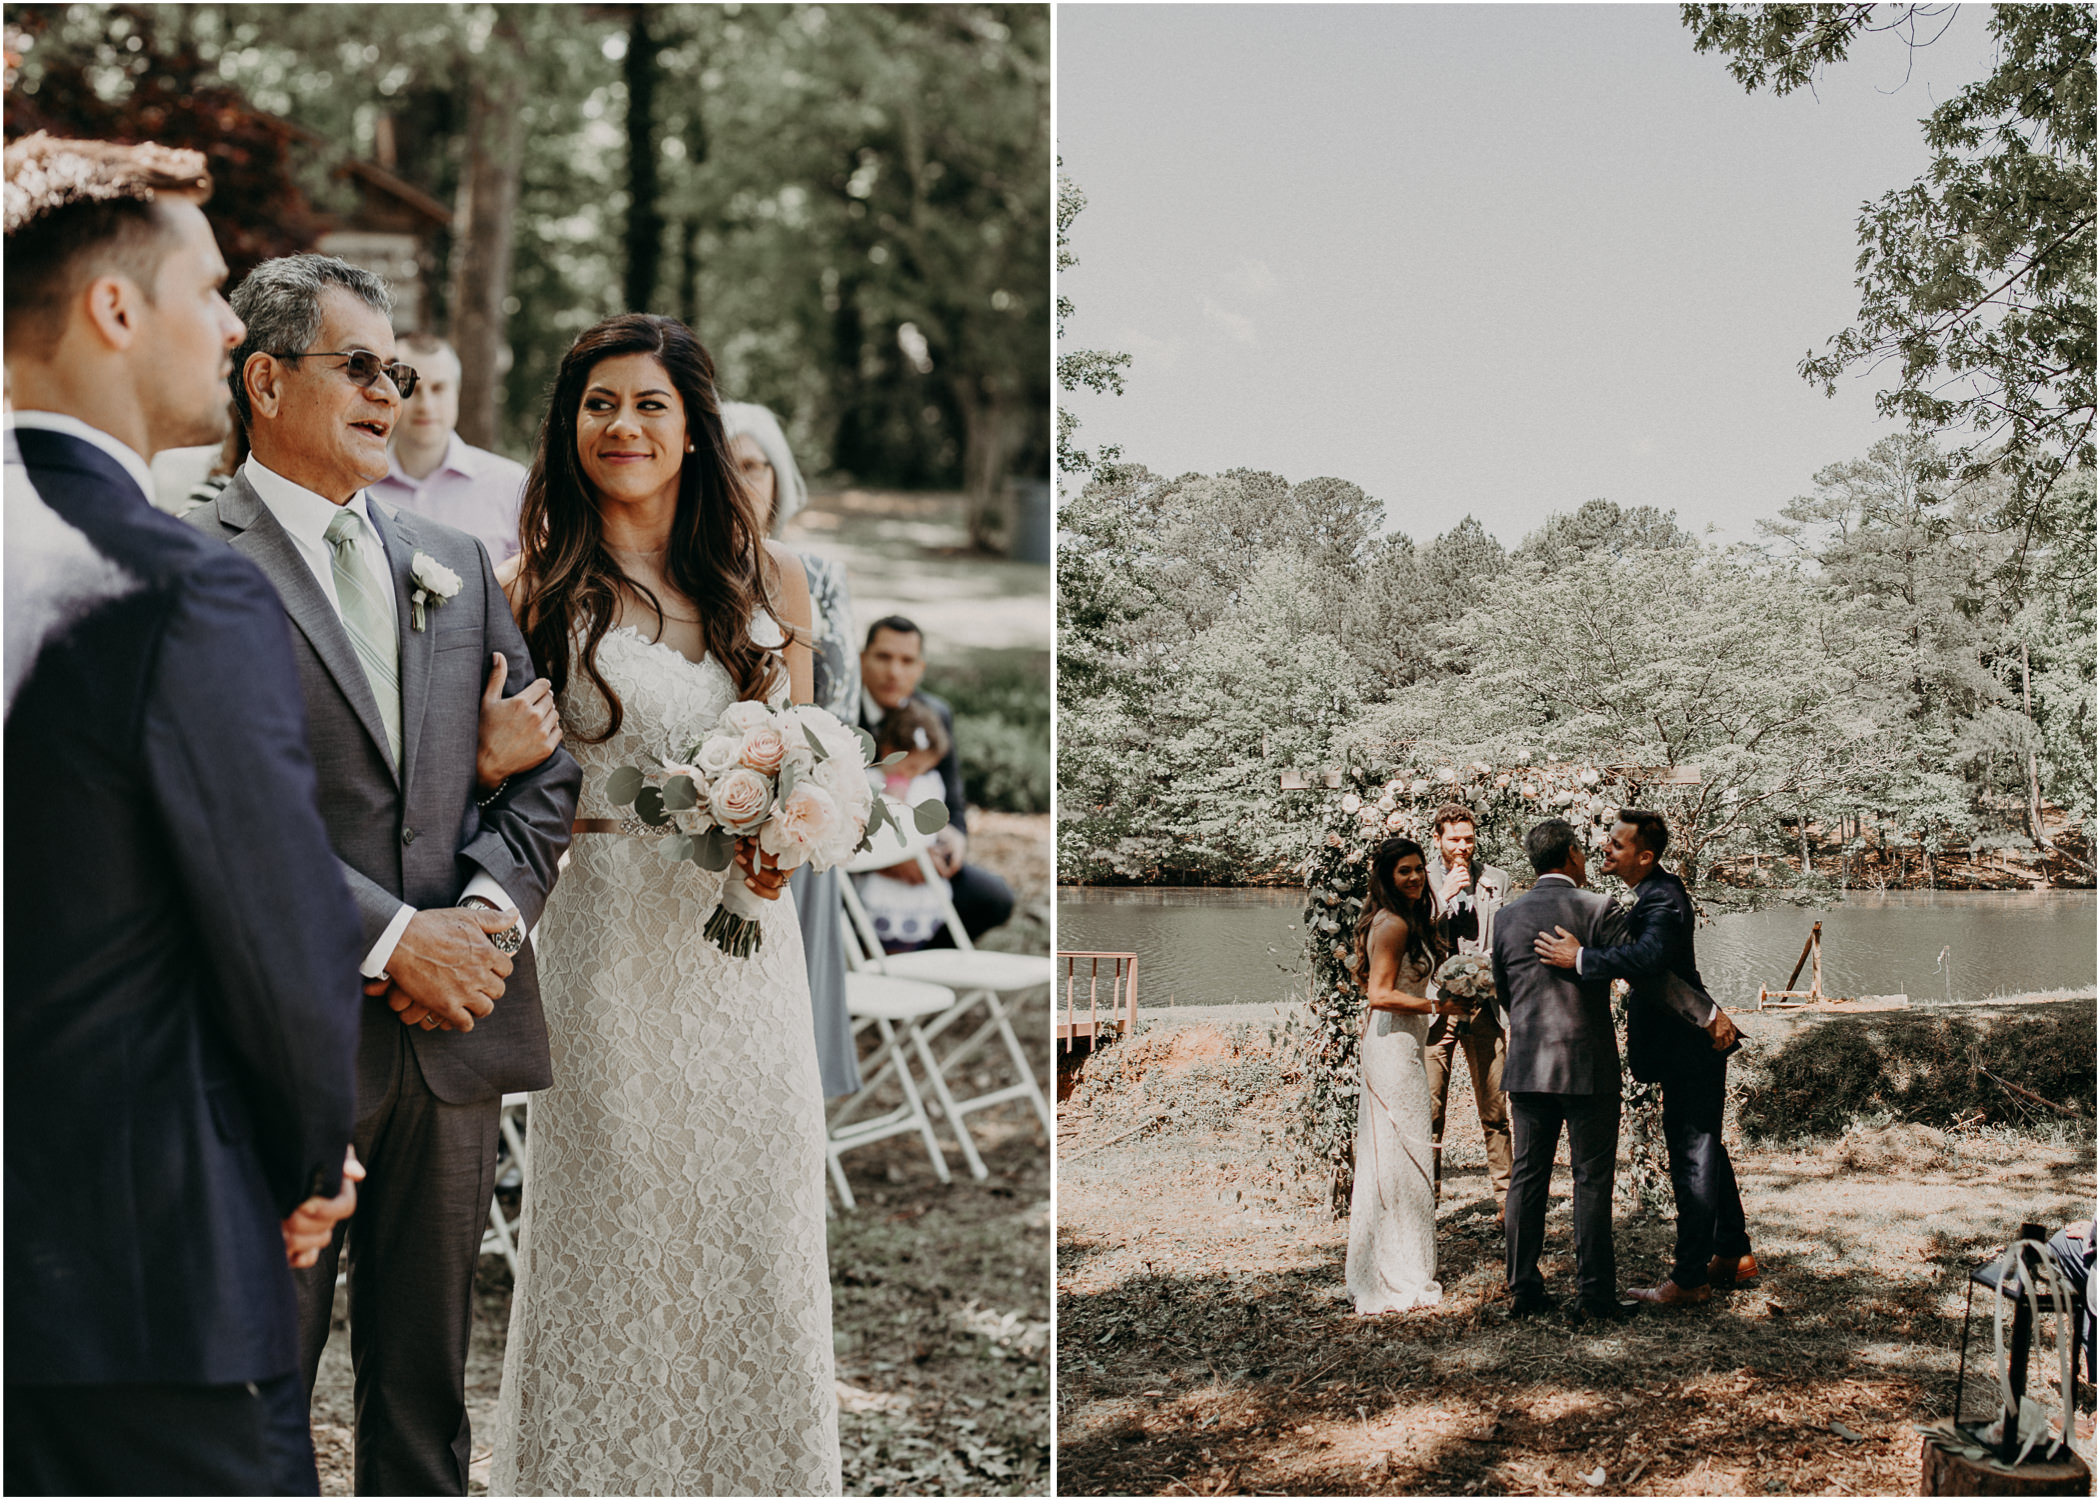 48 Garden wedding - intimate wedding atlanta wedding photographer.jpg